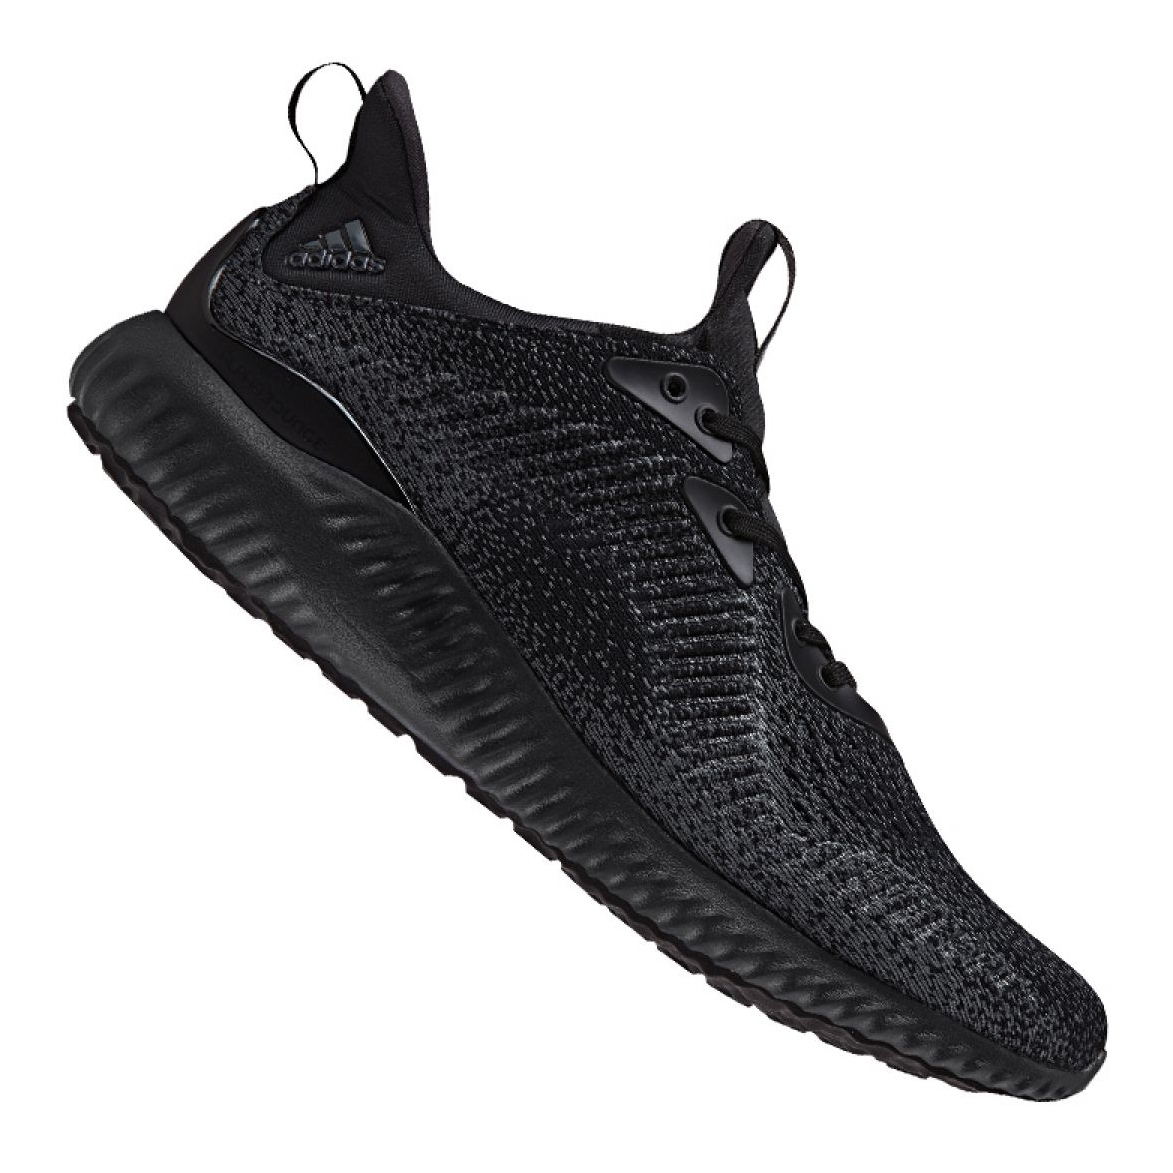 best sneakers 4d1fa 16c94 Black Adidas Alphabounce Em M DB1090 shoes